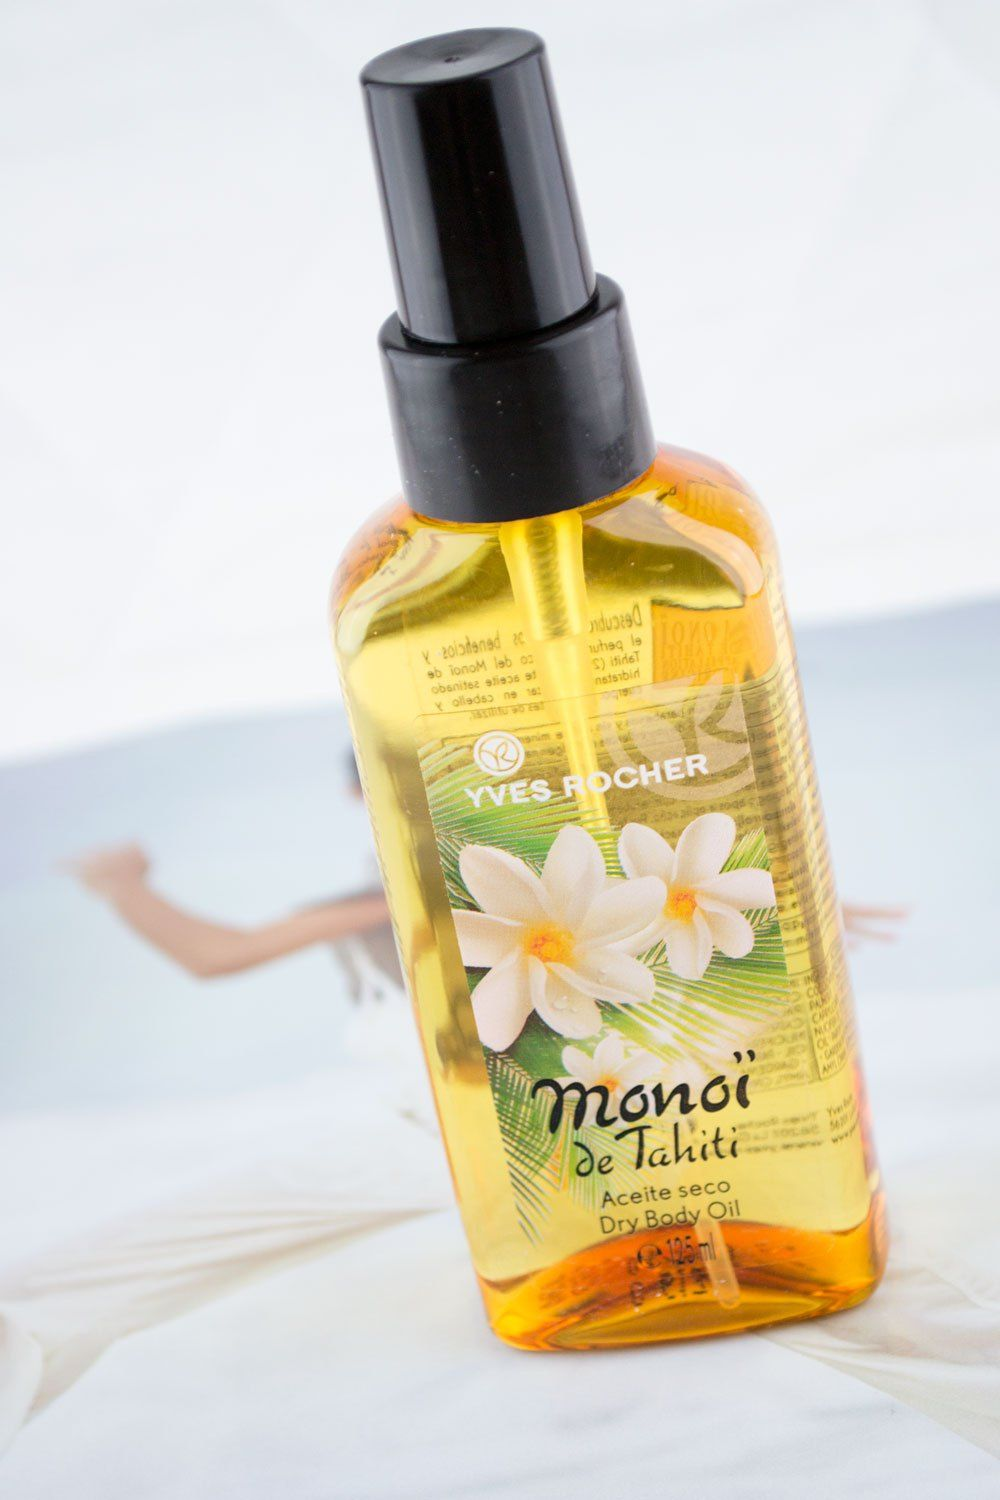 yves rocher monoi de tahiti dry oil review